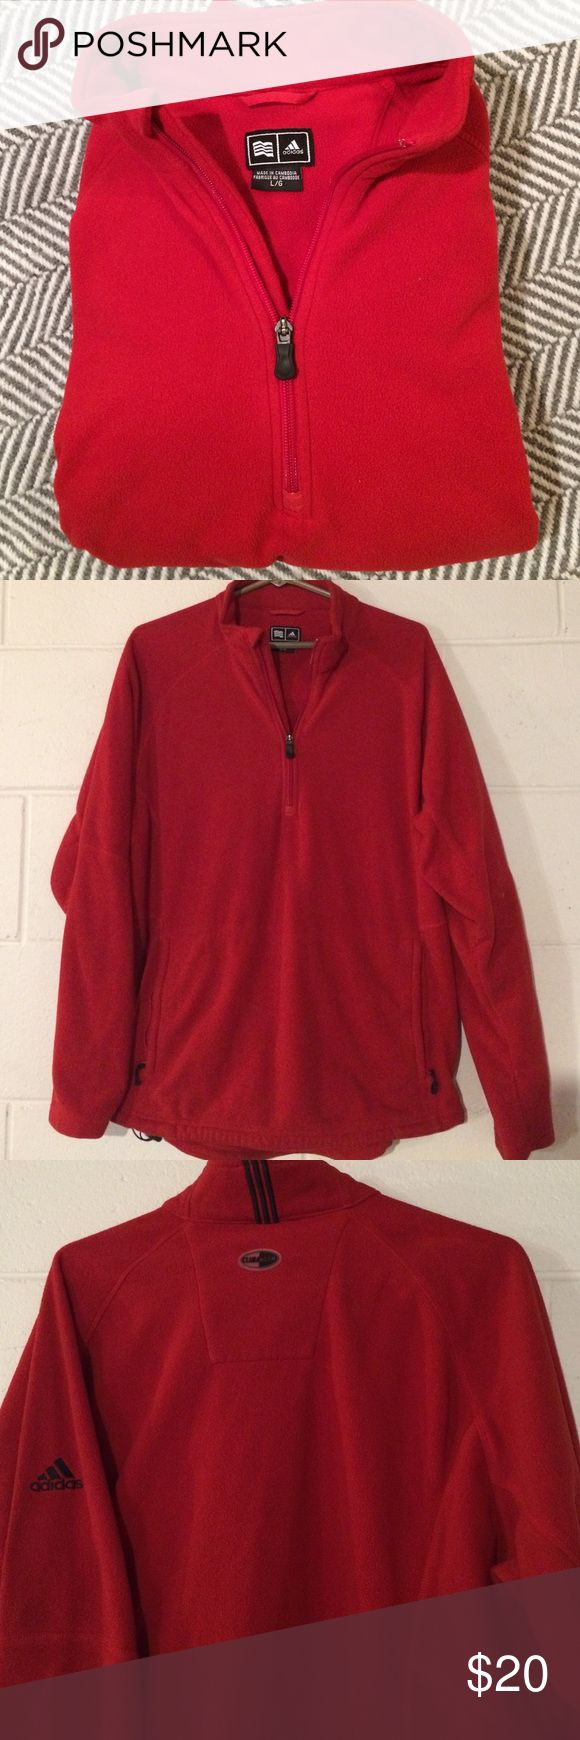 Adidas ClimaWarm women's fleece pullover. Like new This is in excellent, like new condition. No holes, stains or tears. Red in color with Adidas logo on sleeve. Zips 1/4 of pullover. Very soft, warm Adidas ClimaWarm pullover! Adidas Tops Sweatshirts & Hoodies